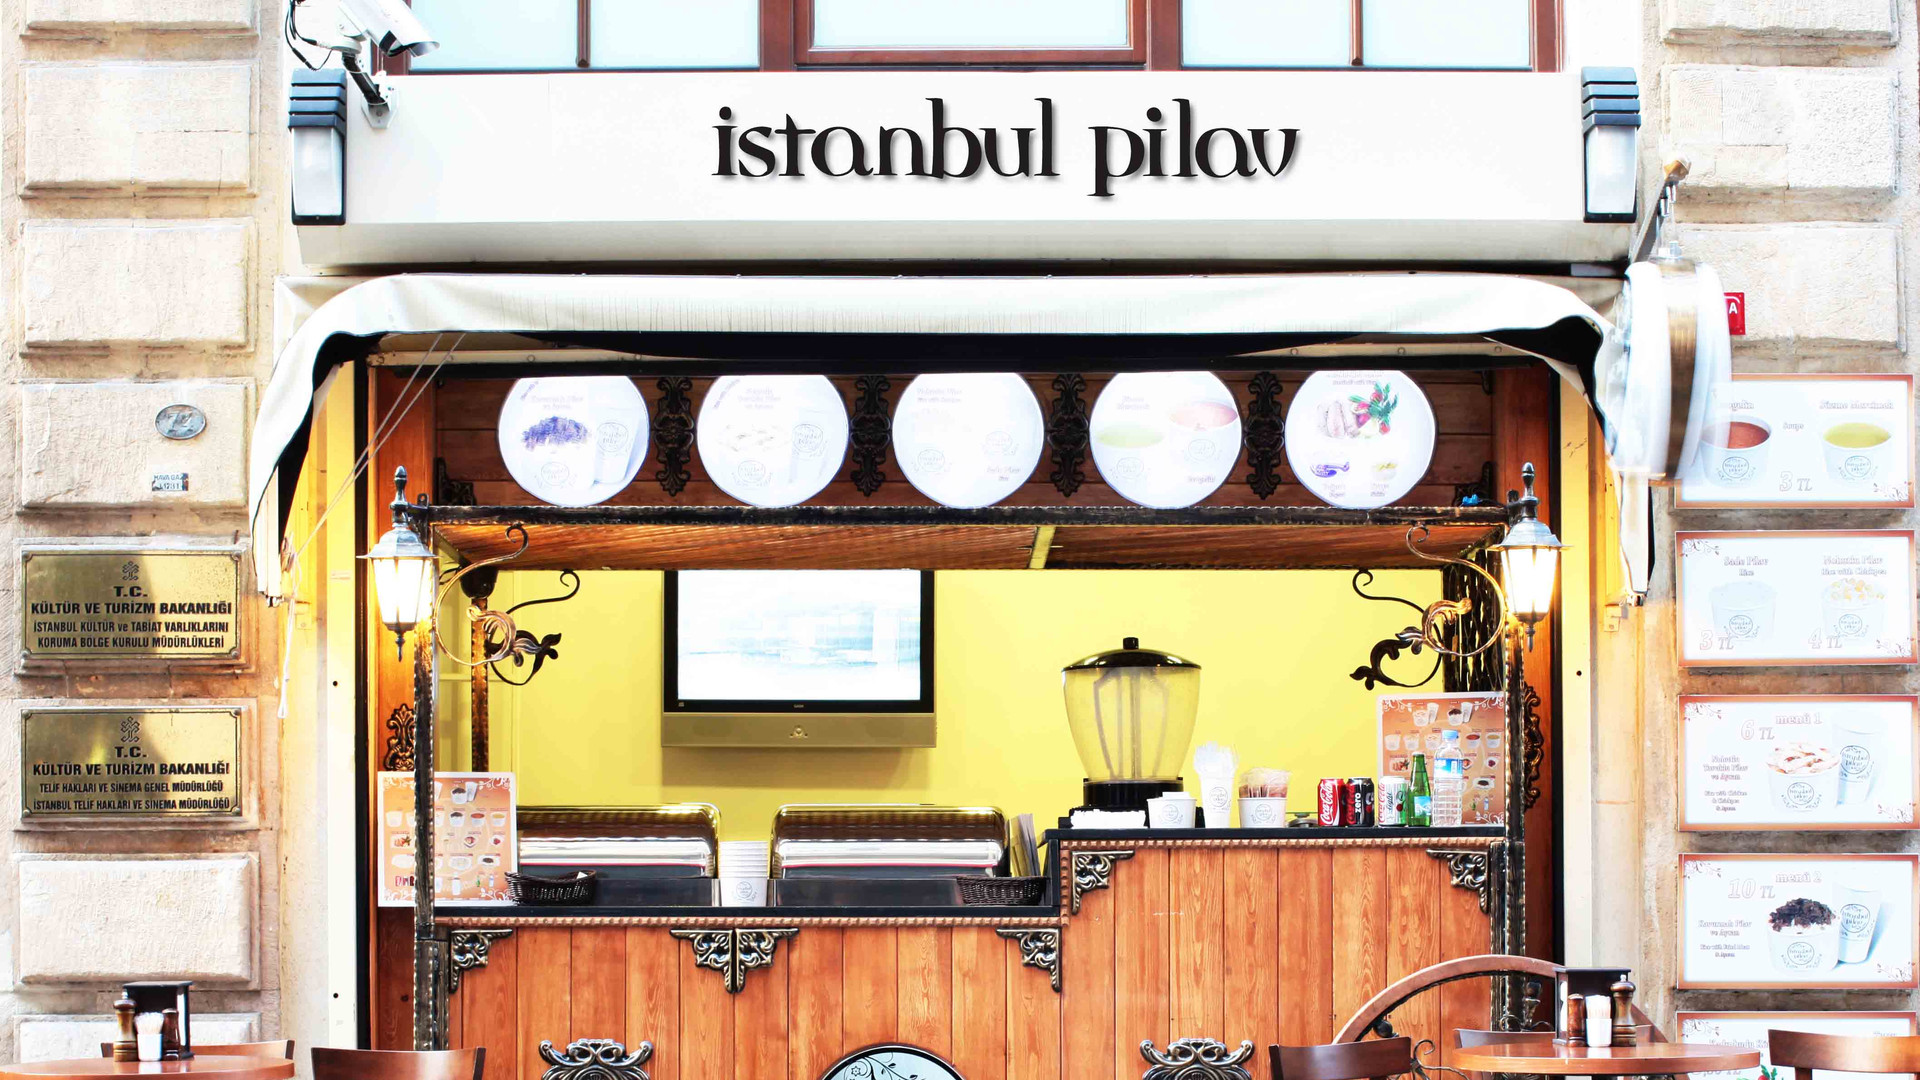 ISTANBUL PILAV CONCEPT